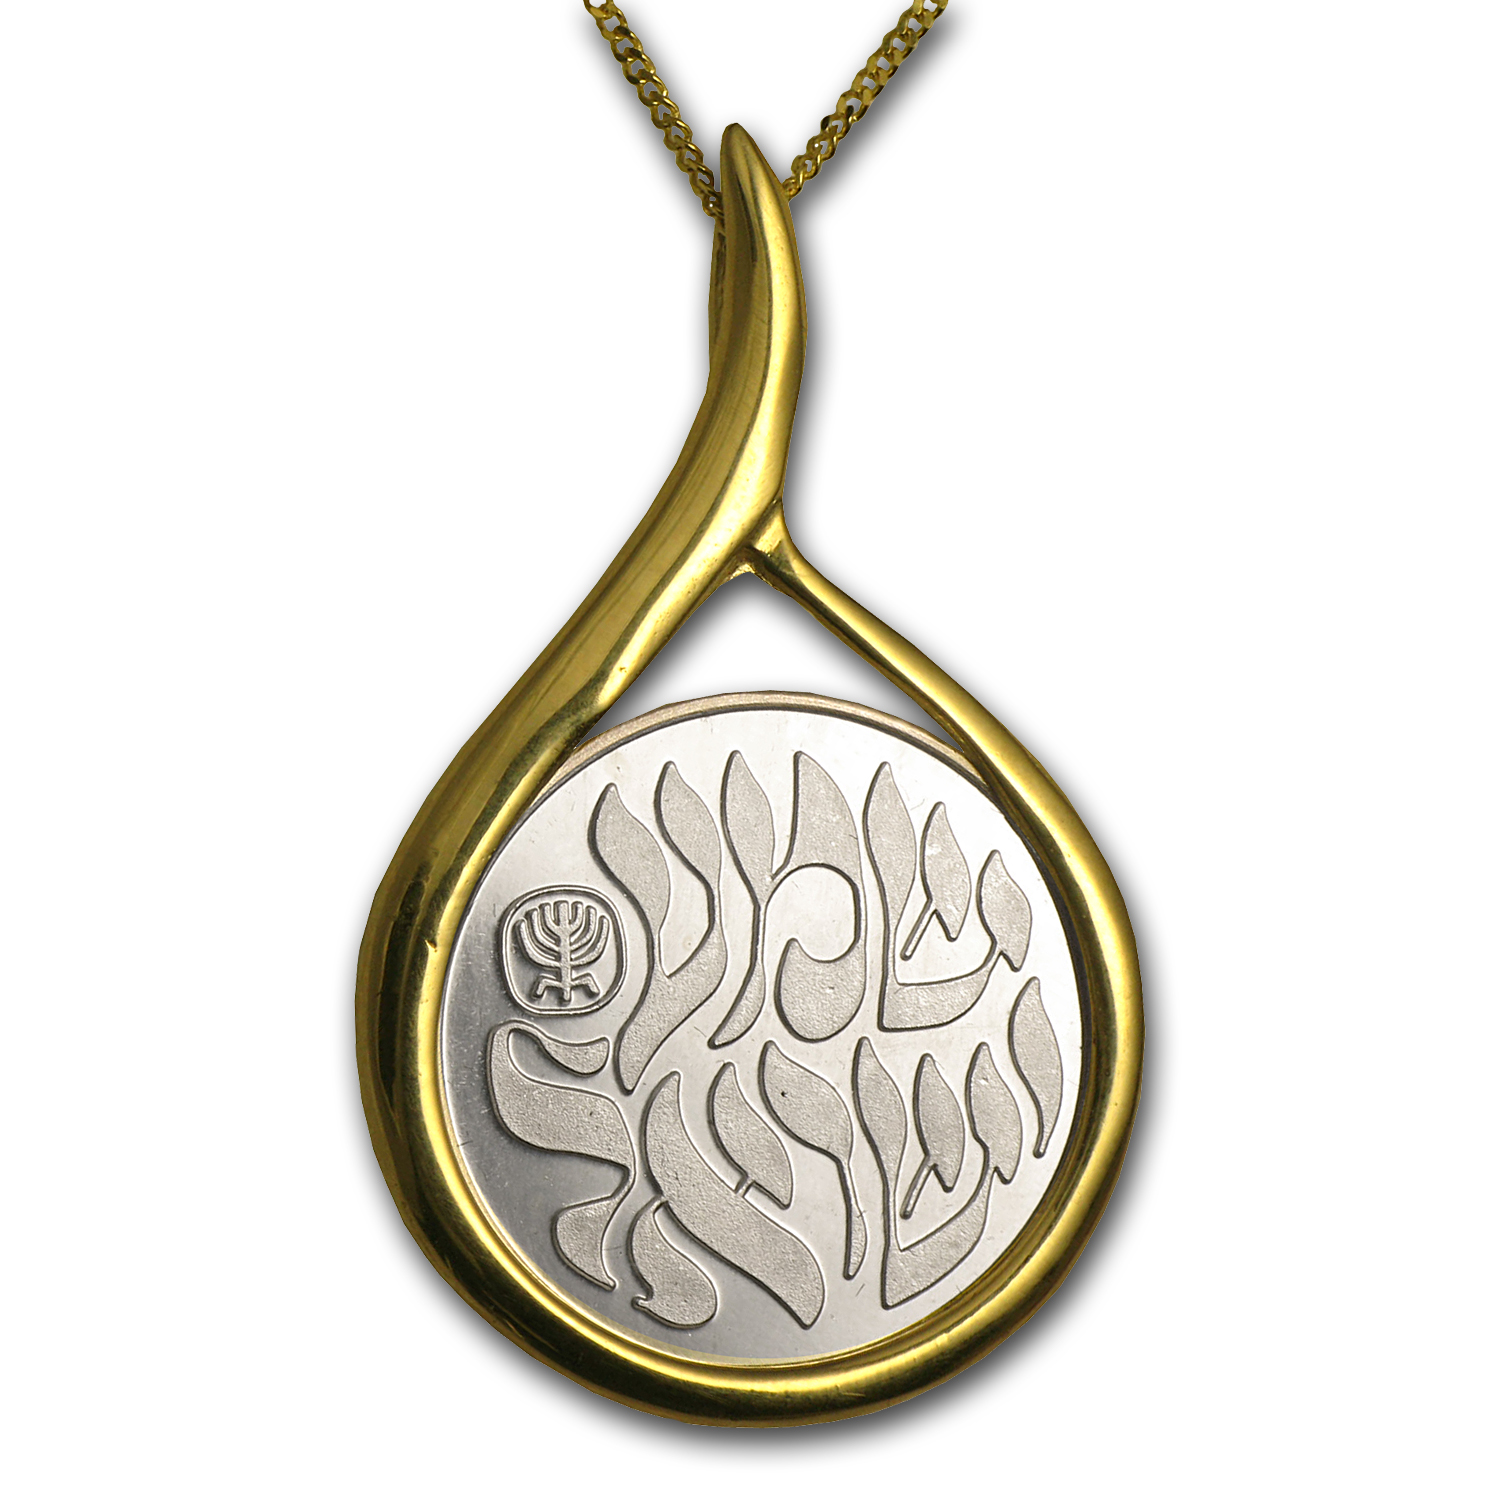 Israel Shema Silver Medal with 14k Gold Pendant